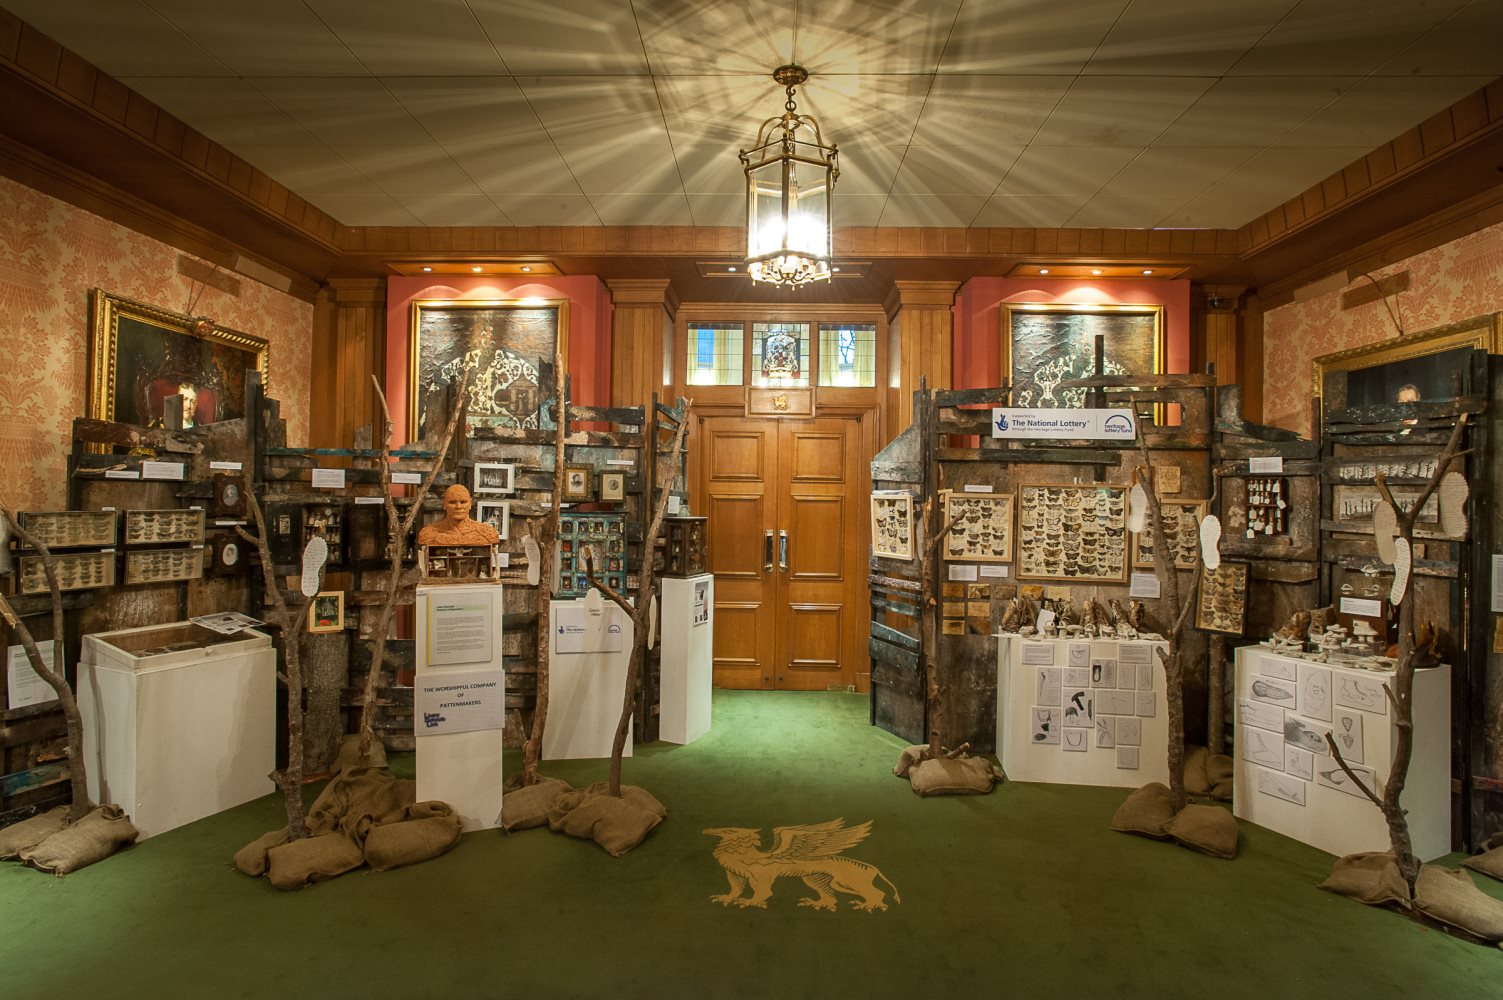 Exhibition at the Barber Surgeon's Hall